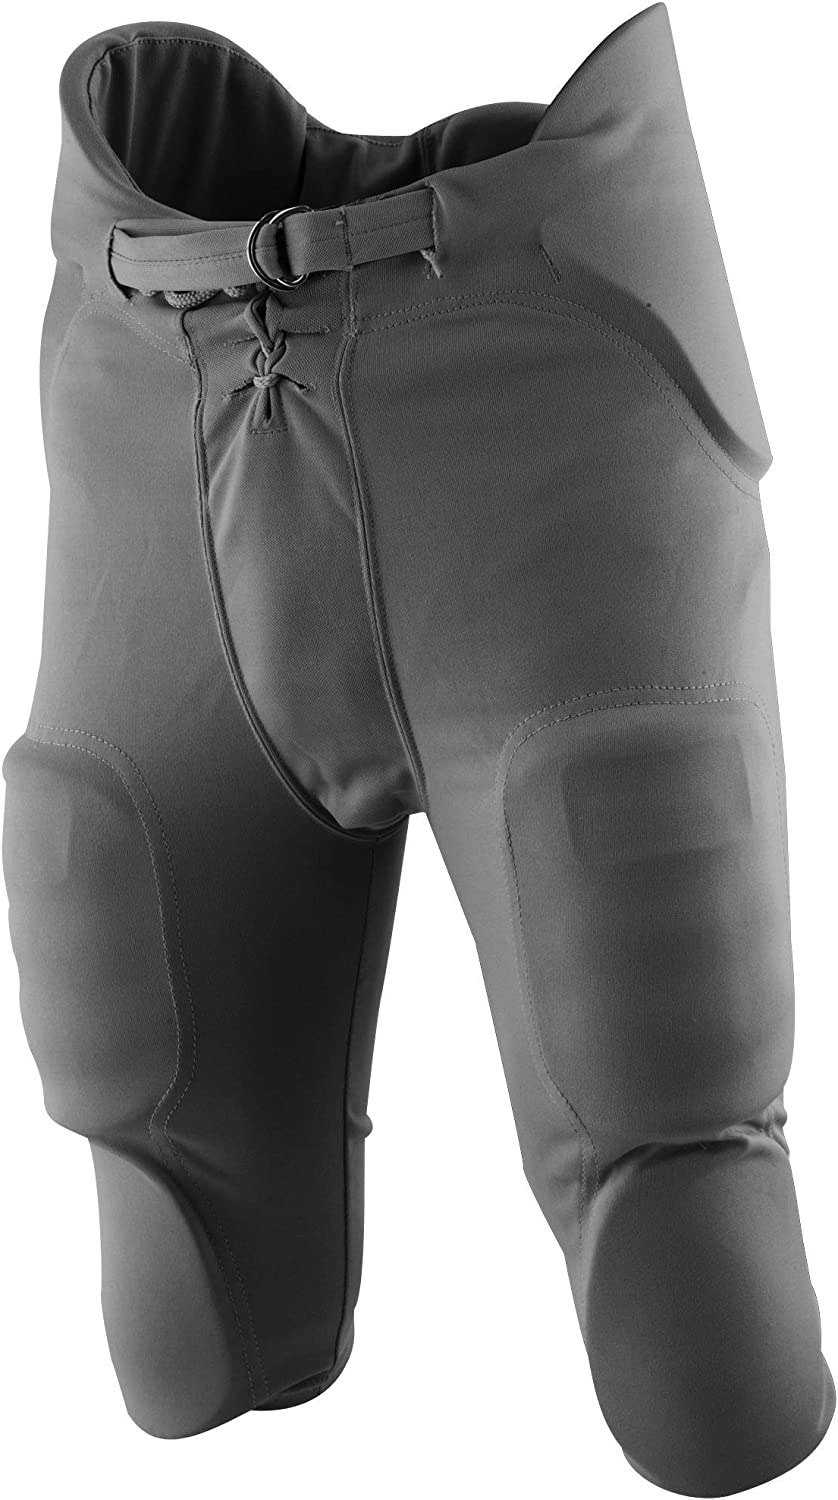 F3500P RAWLINGS Adult Practice//Game Pant with Built-in Pads ALL COLORS AND SIZES